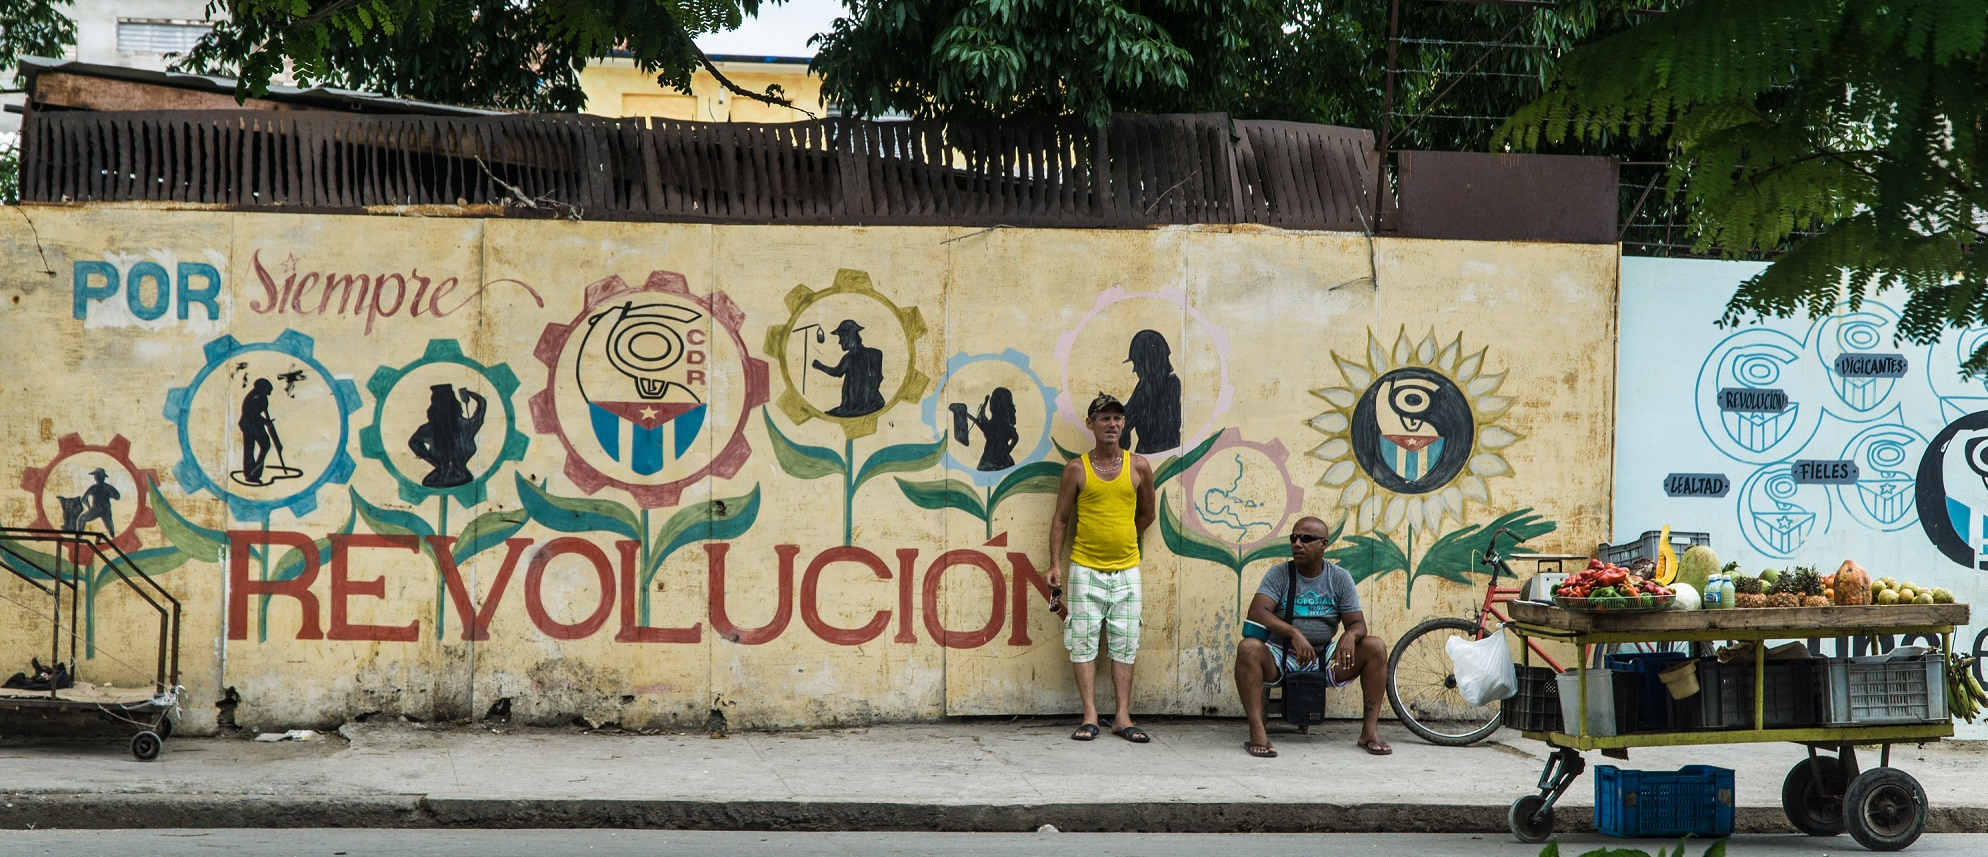 Two men in front of a mural that says Por Siempre Revolucion